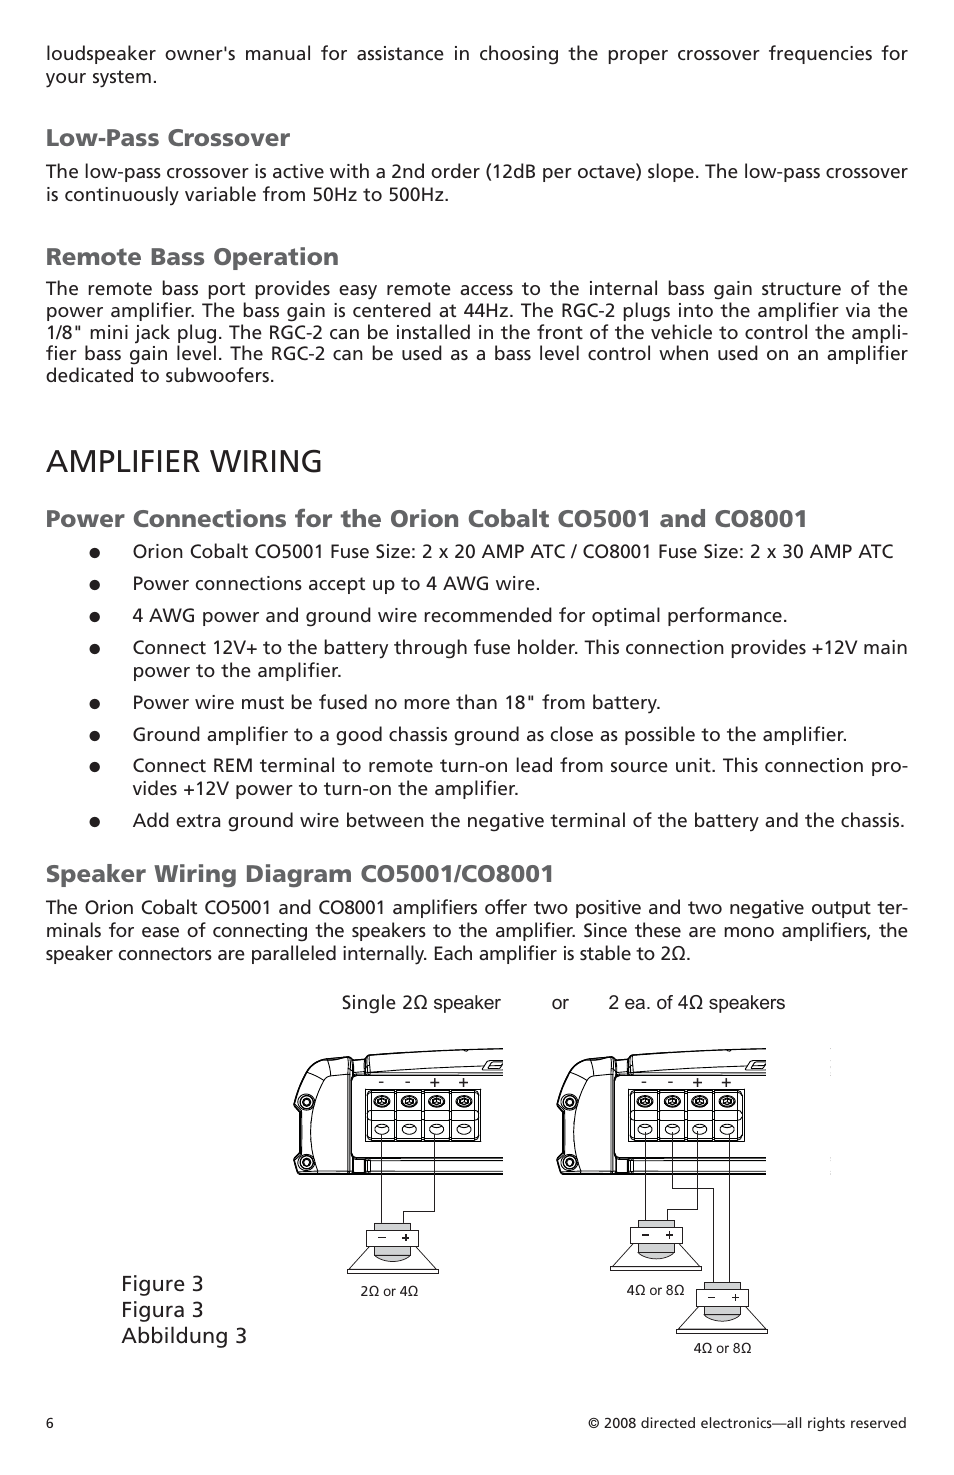 medium resolution of amplifier wiring low pass crossover remote bass operation orion c08001 user manual page 7 66